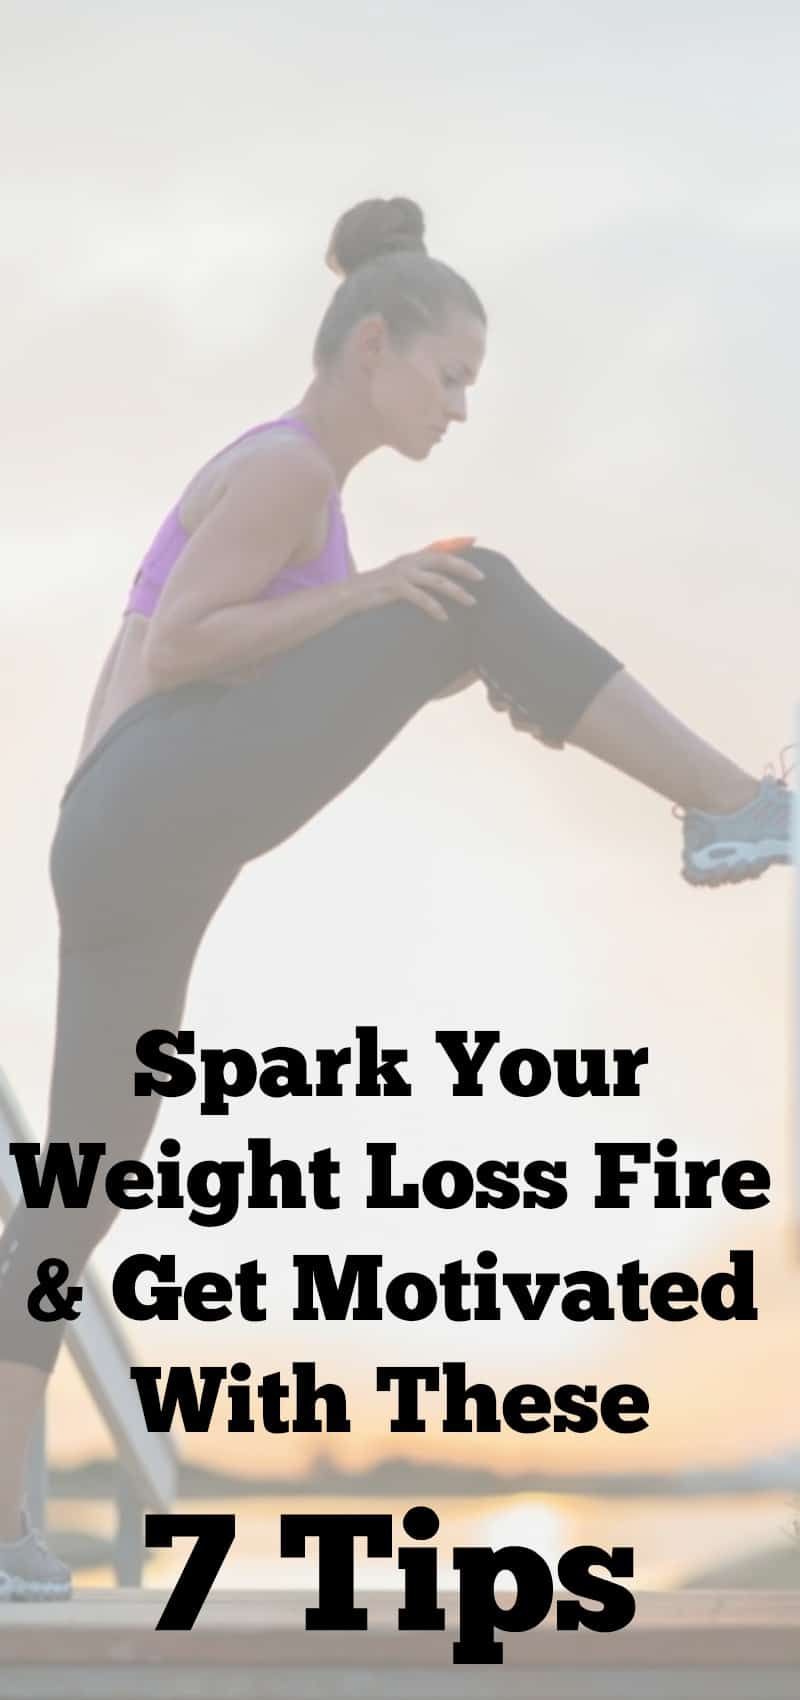 Spark Your Weight Loss Fire and Get Motivated with These 7 Tips